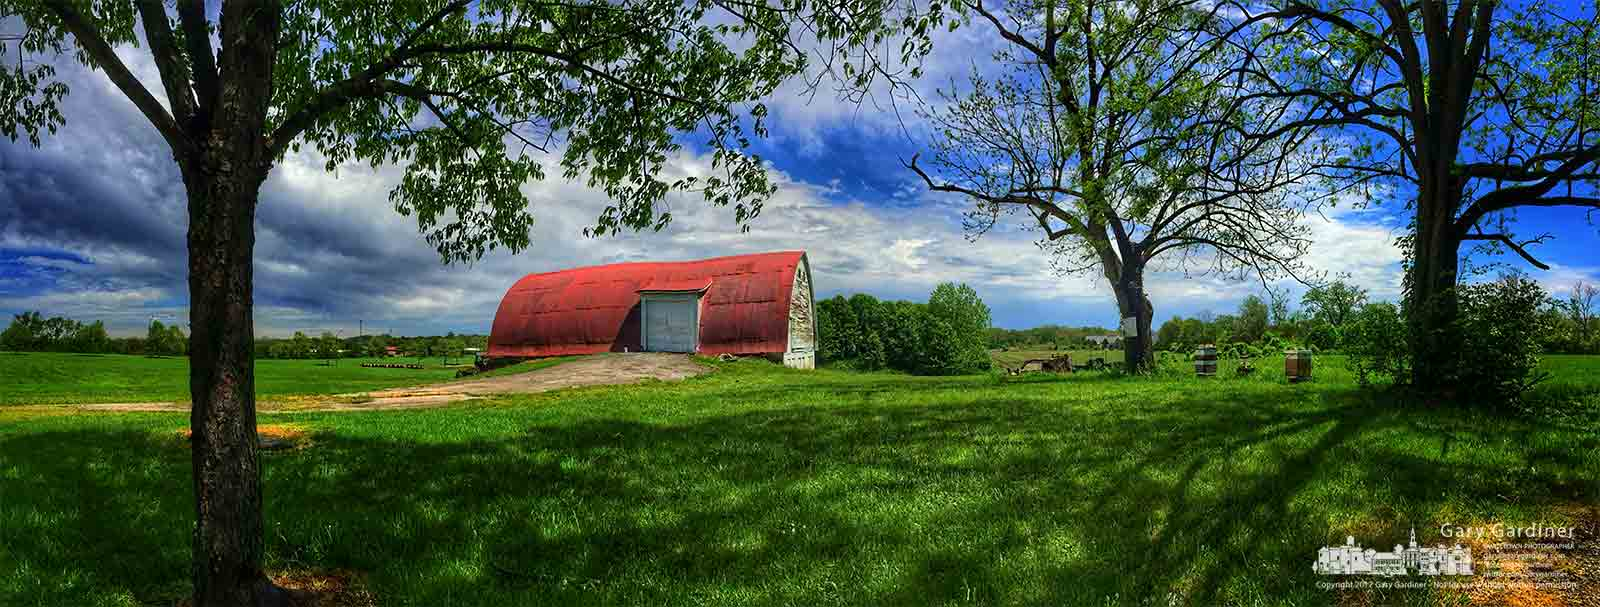 The noonday sun deepens the colors of the Braun Farm's red barn, green fields, and blue sky after a cloudy morning and before a much cooler afternoon freeze. My Final Photo for May 1, 2017.